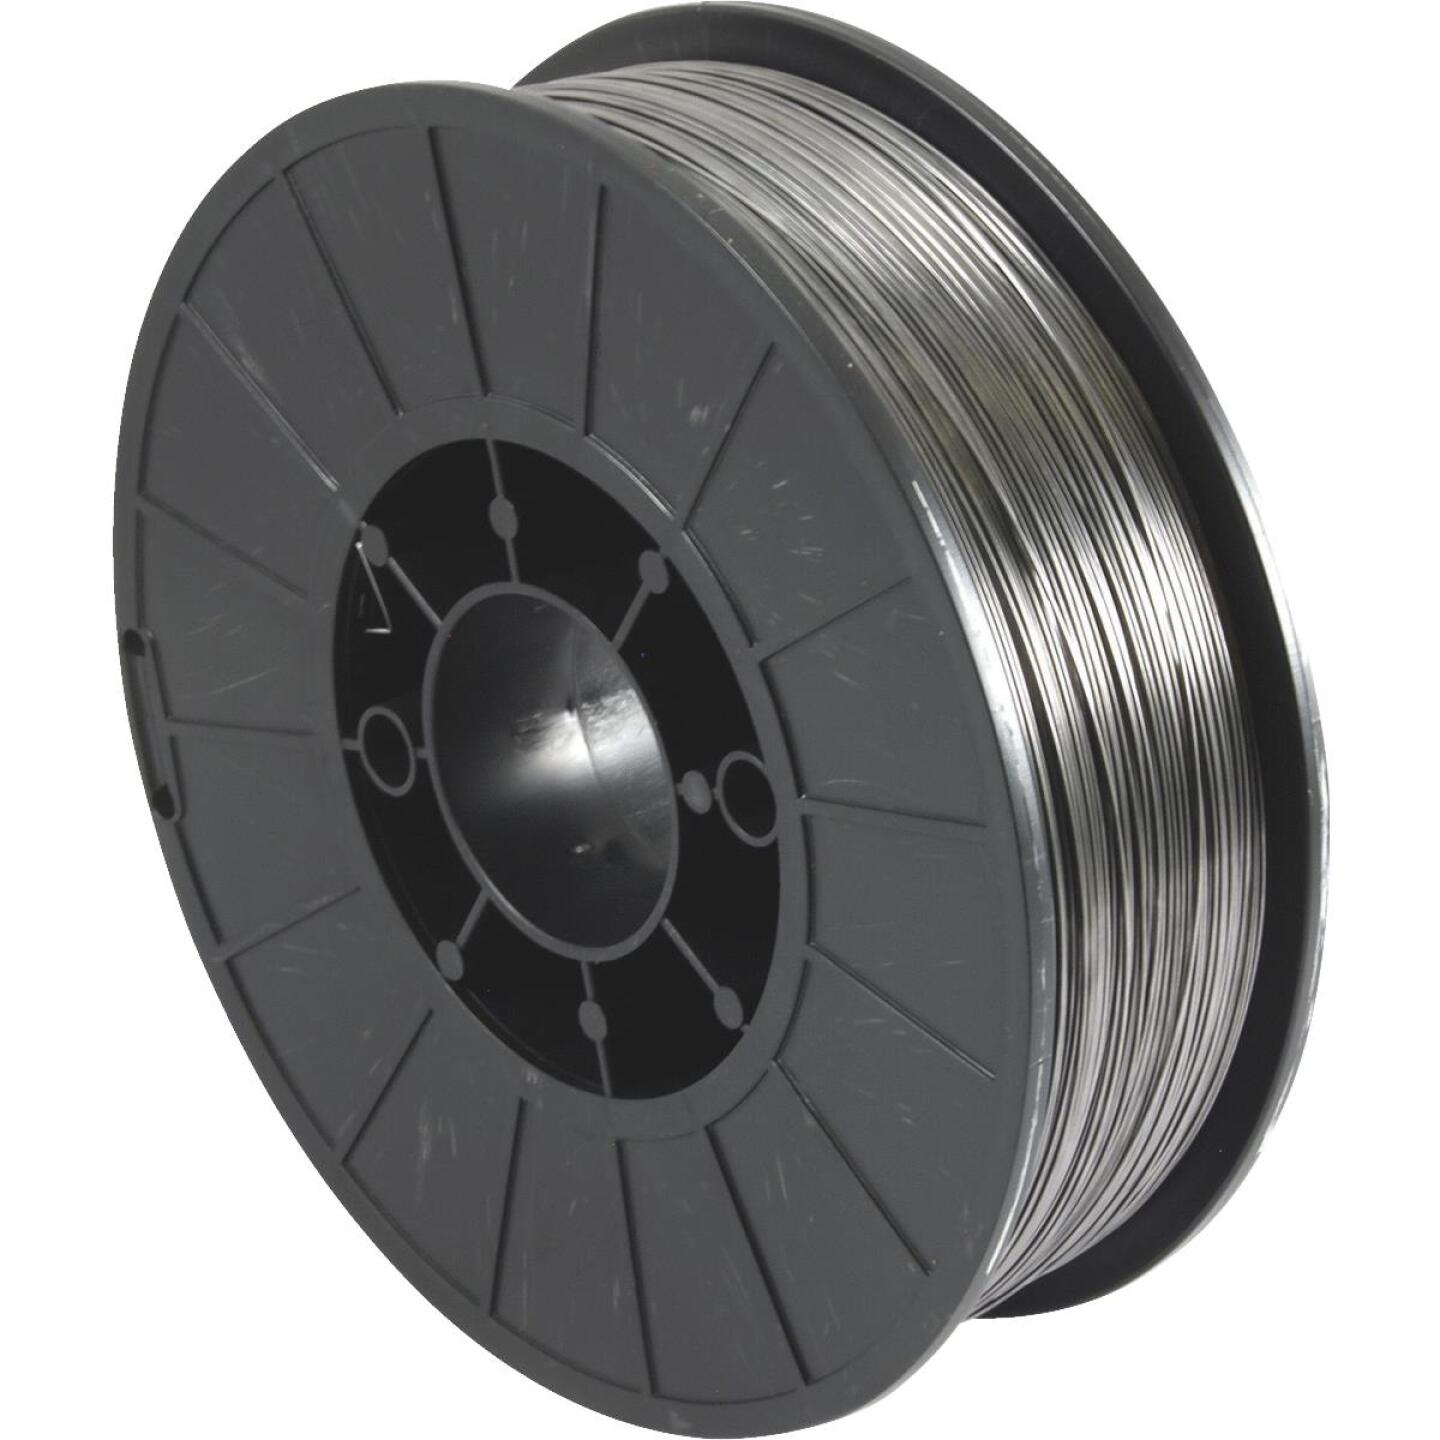 Forney E71T-GS 0.035 In. Flux Core Mild Steel Mig Wire, 10 Lb. Image 1